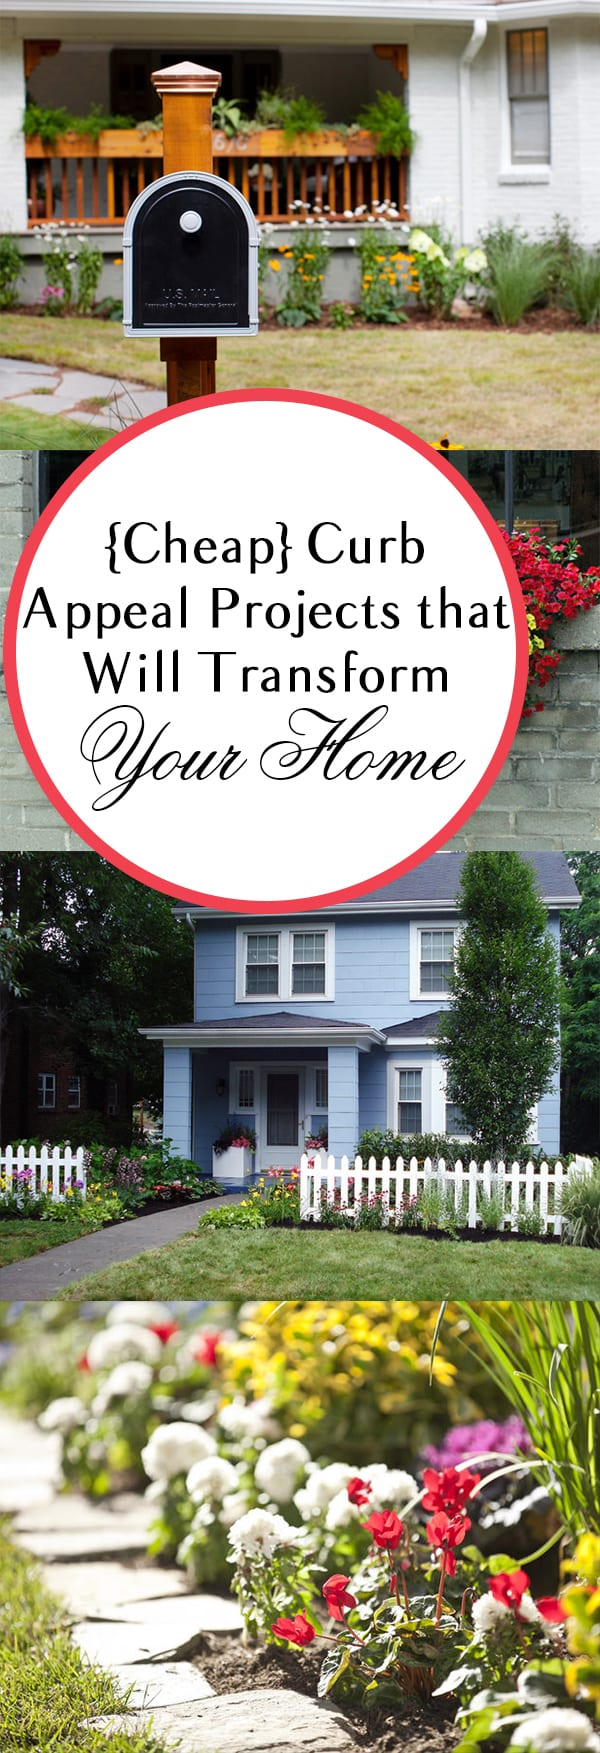 Cheap Curb Appeal Projects That Will Transform Your Home